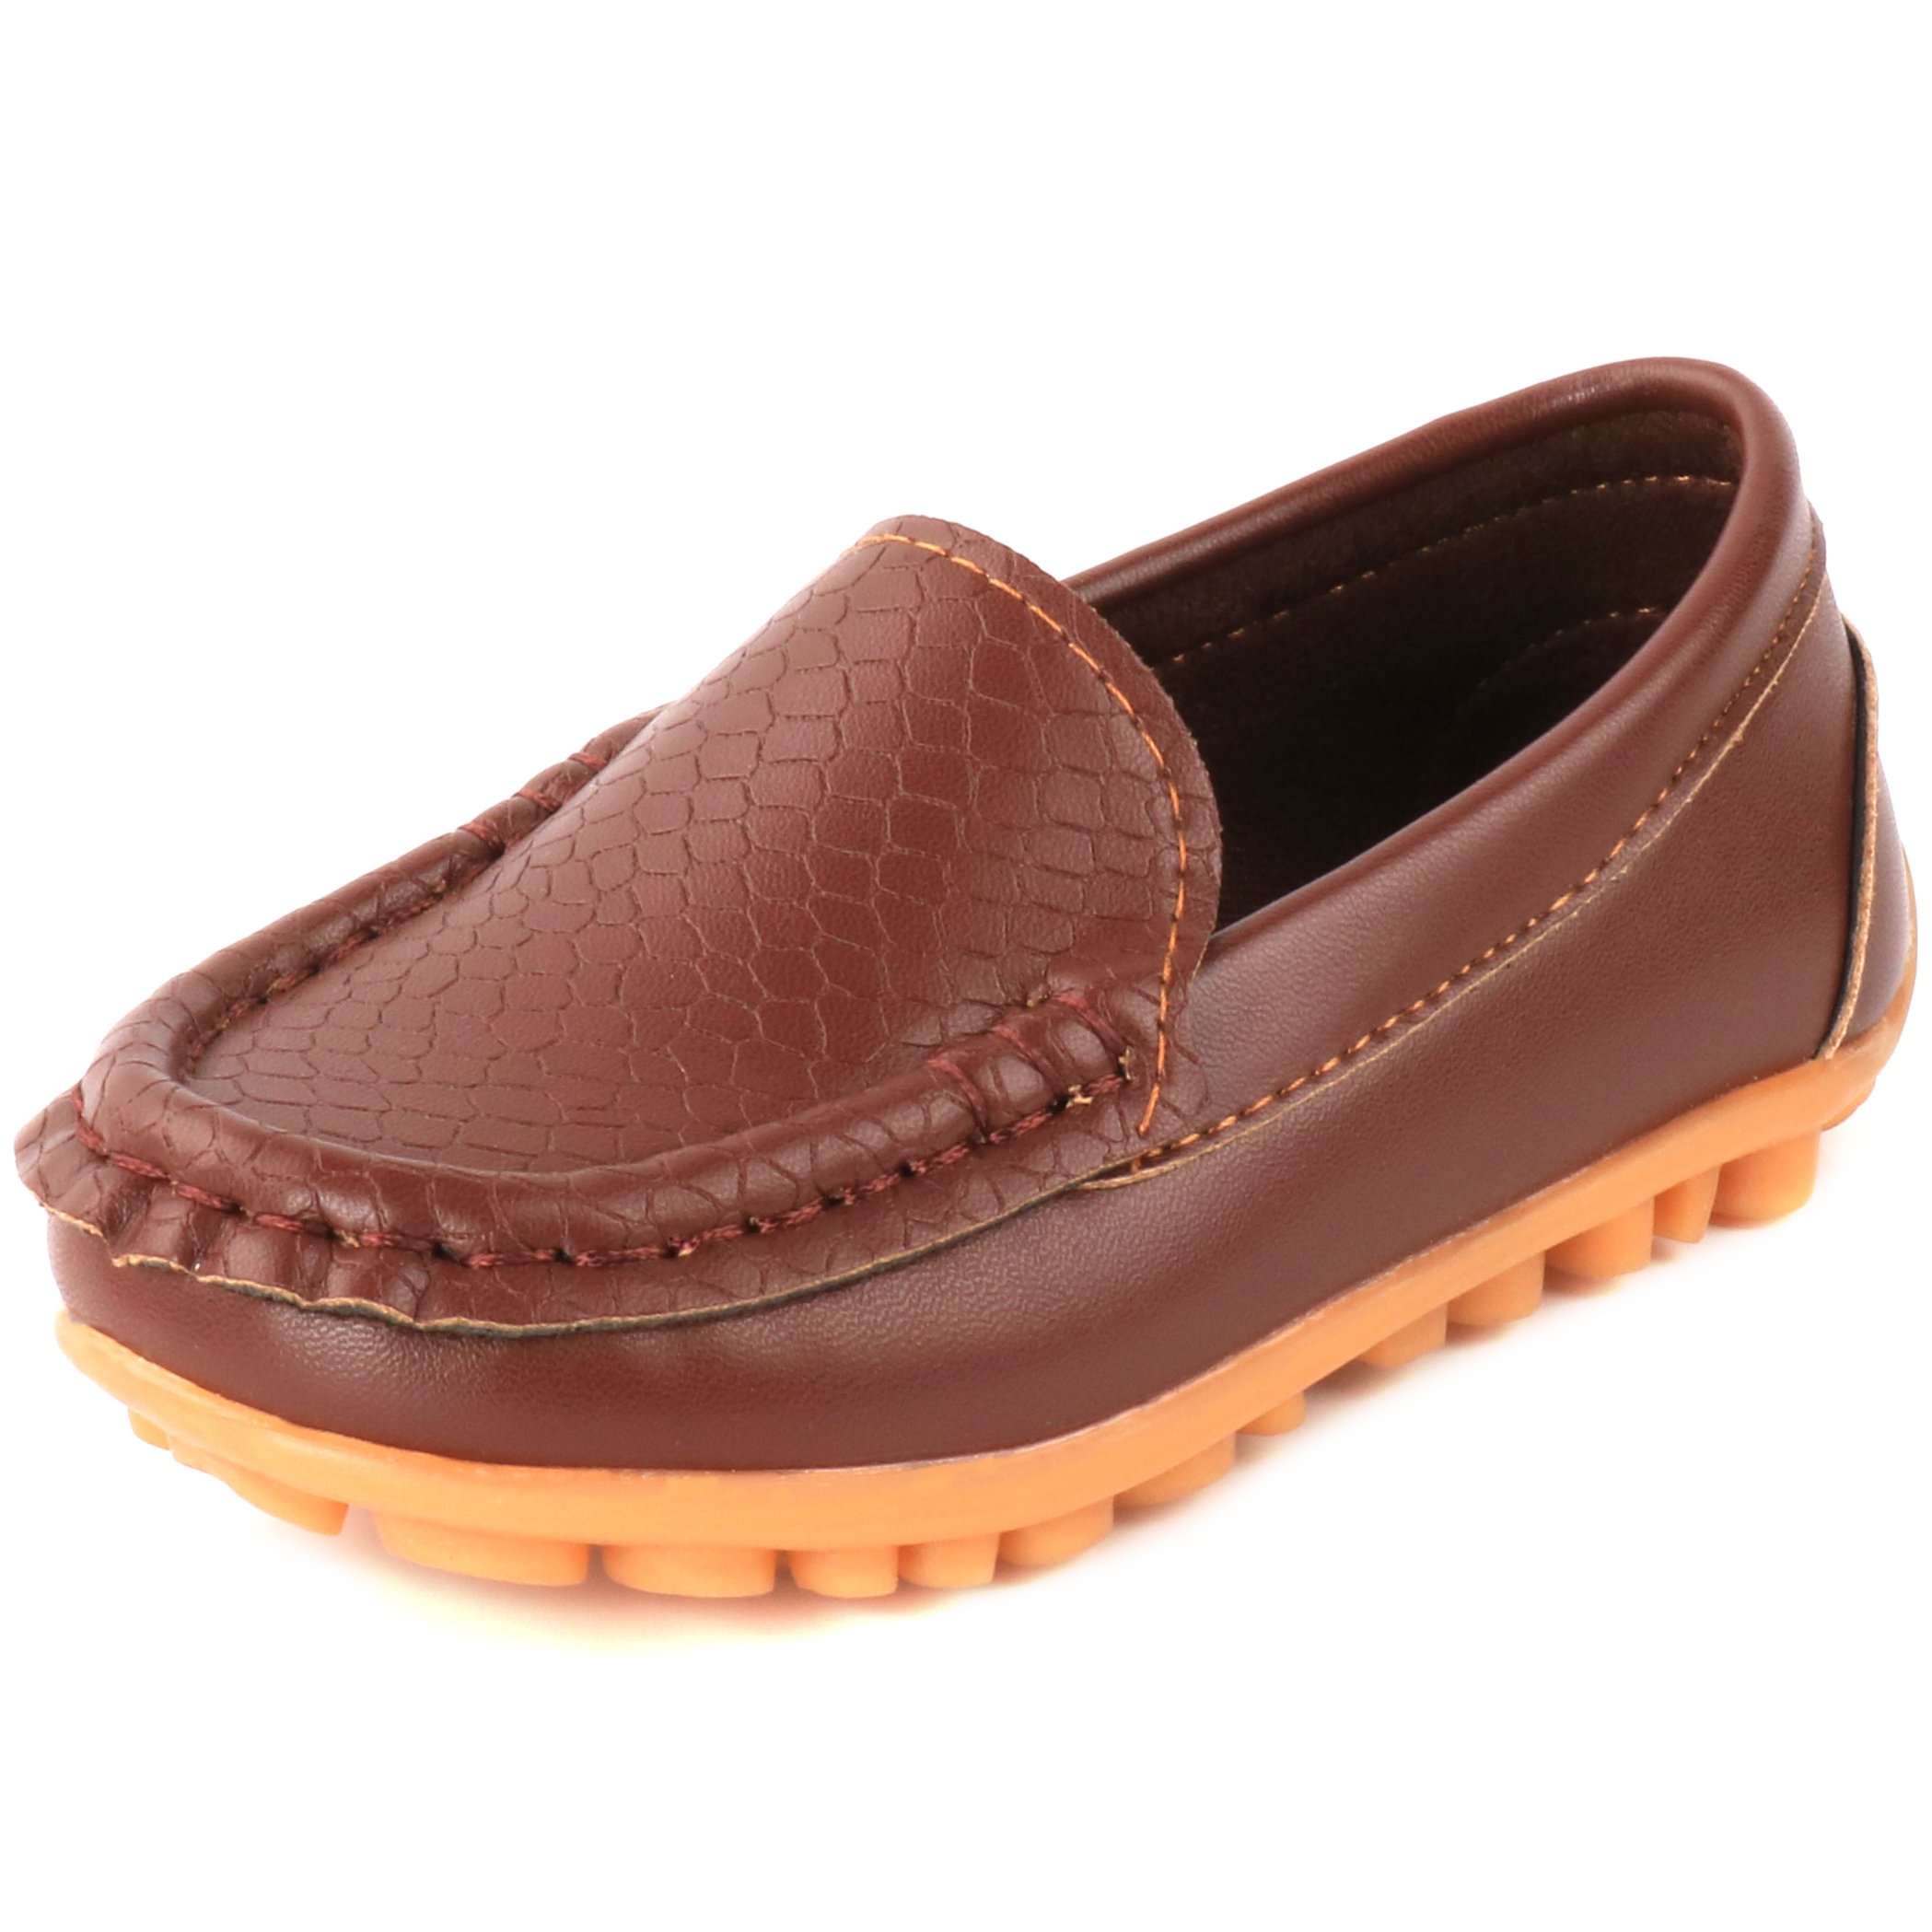 Femizee Casual Toddler Kid Boys Girls Loafers Shoes,Brown,1301 CN 25